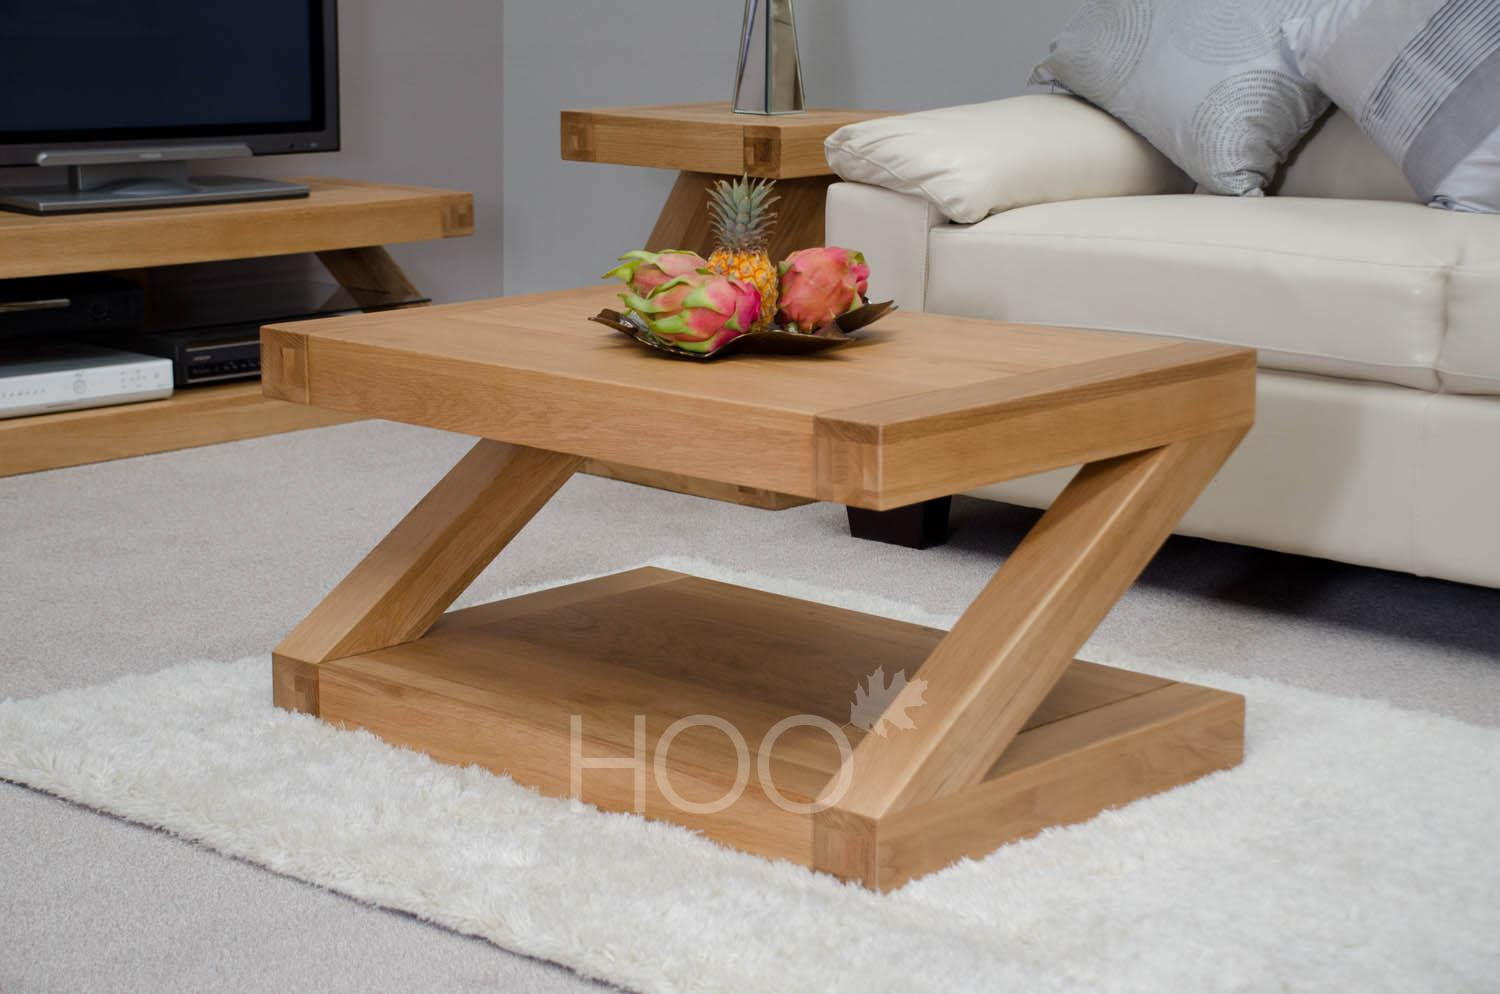 Z Oak 3FT x 2FT Coffee Table